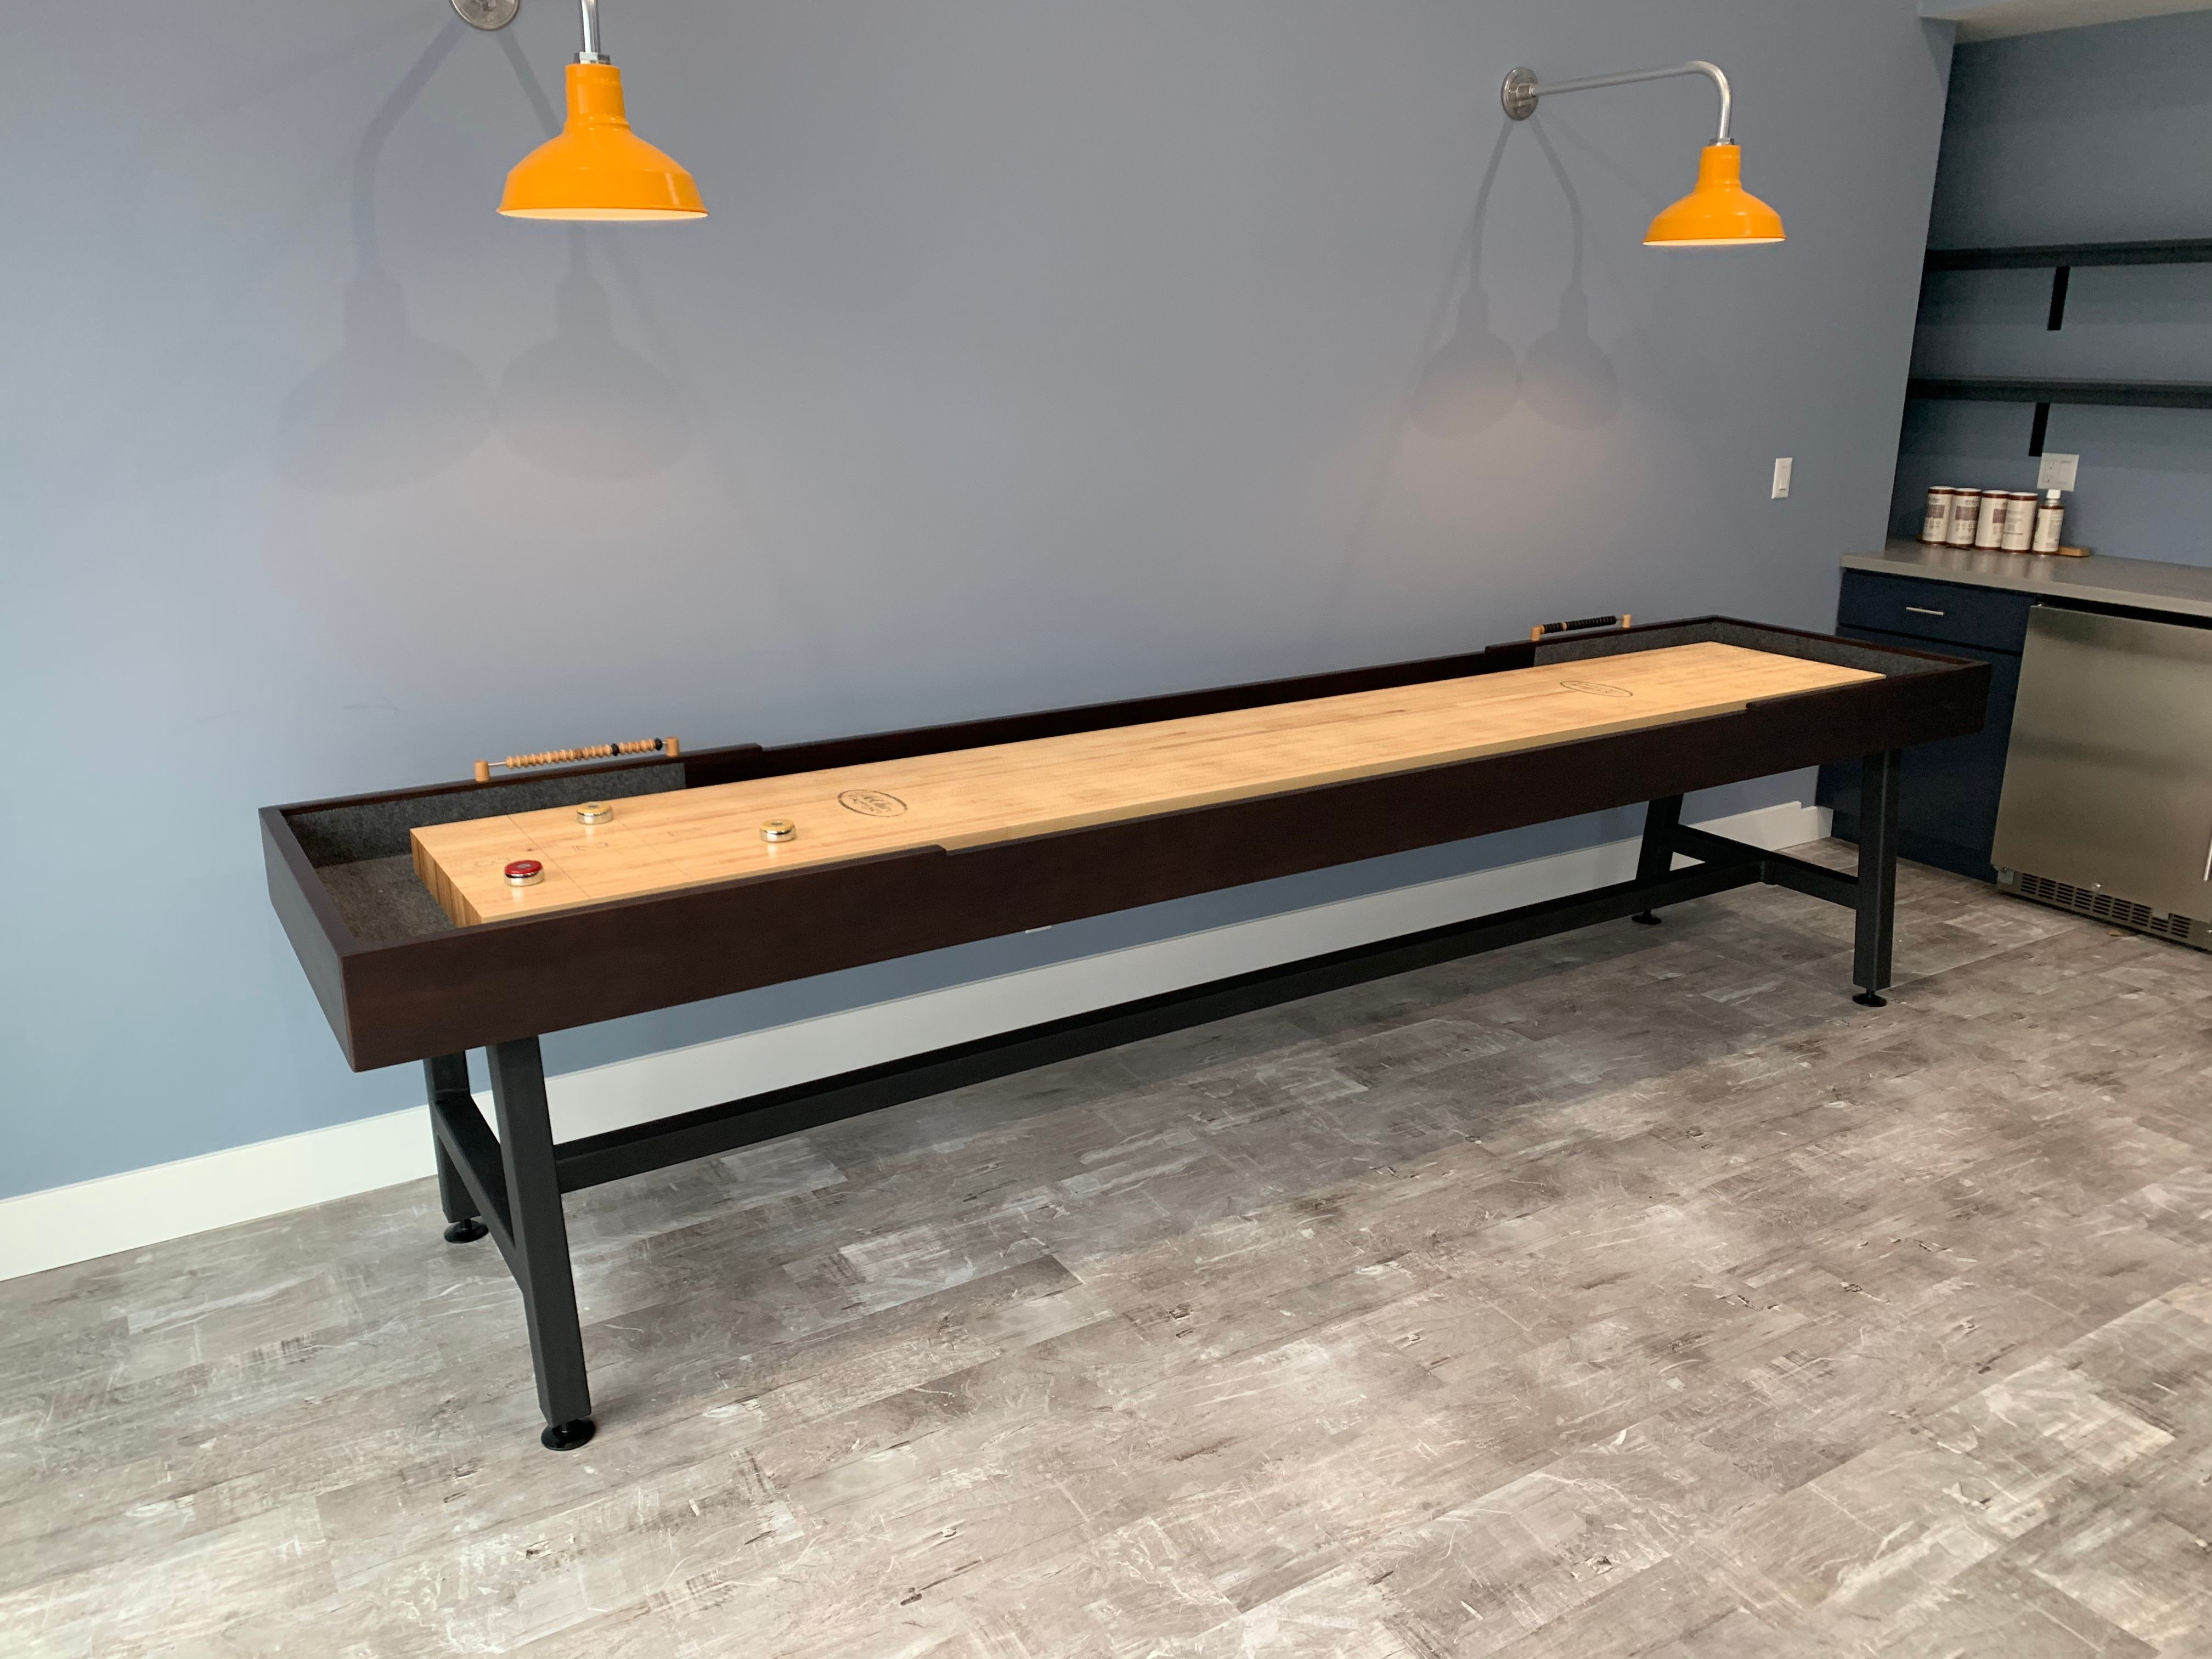 This 12' Contempo handcrafted Shuffleboard Table is a